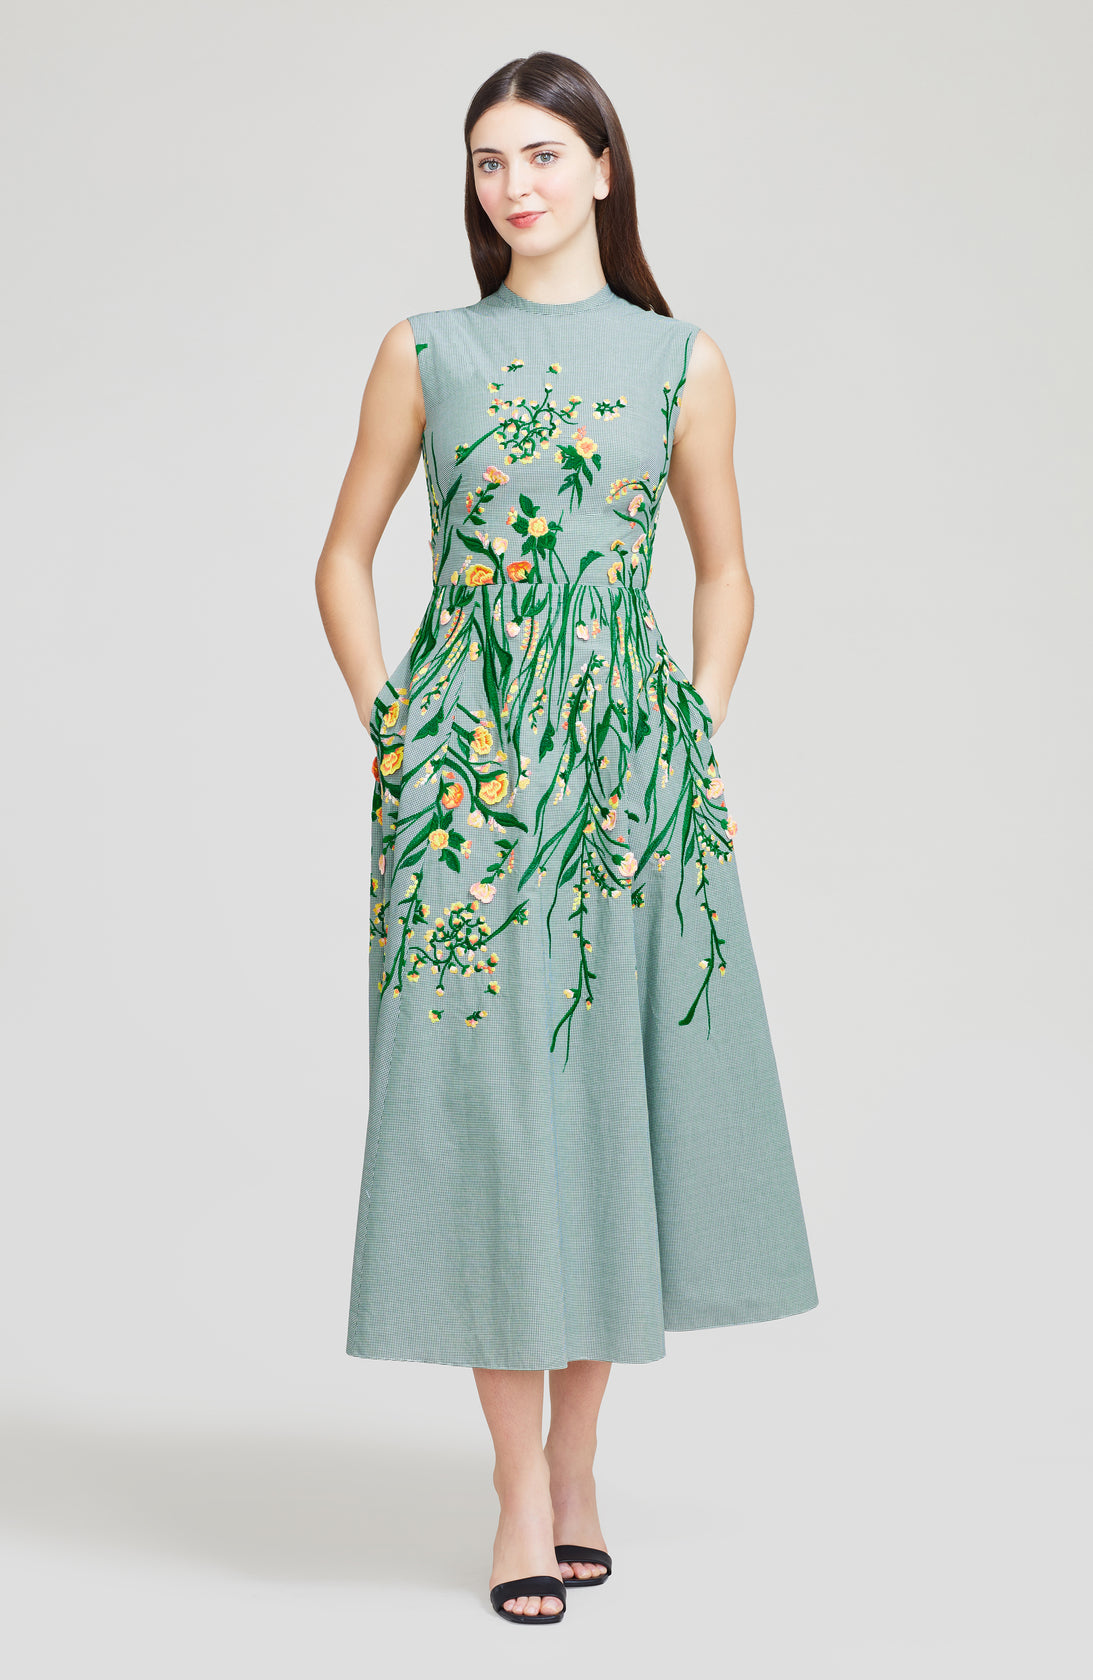 Floral Embroidered Cotton Full Skirt Dress